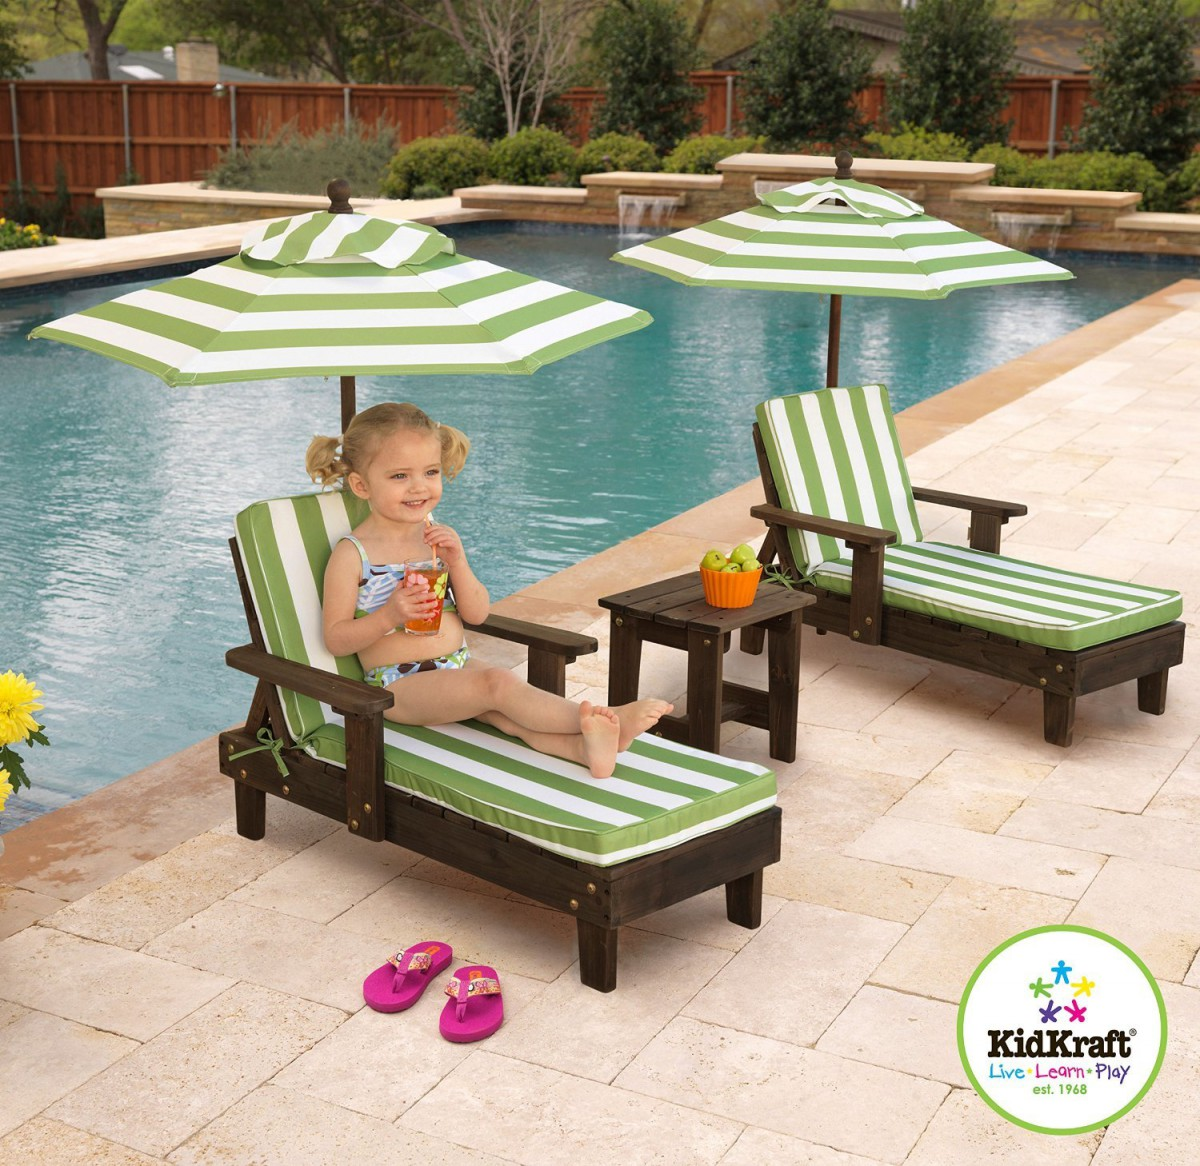 Kidkraft outdoor chaise lounge chairs and umbrella set for Pool and patio furniture